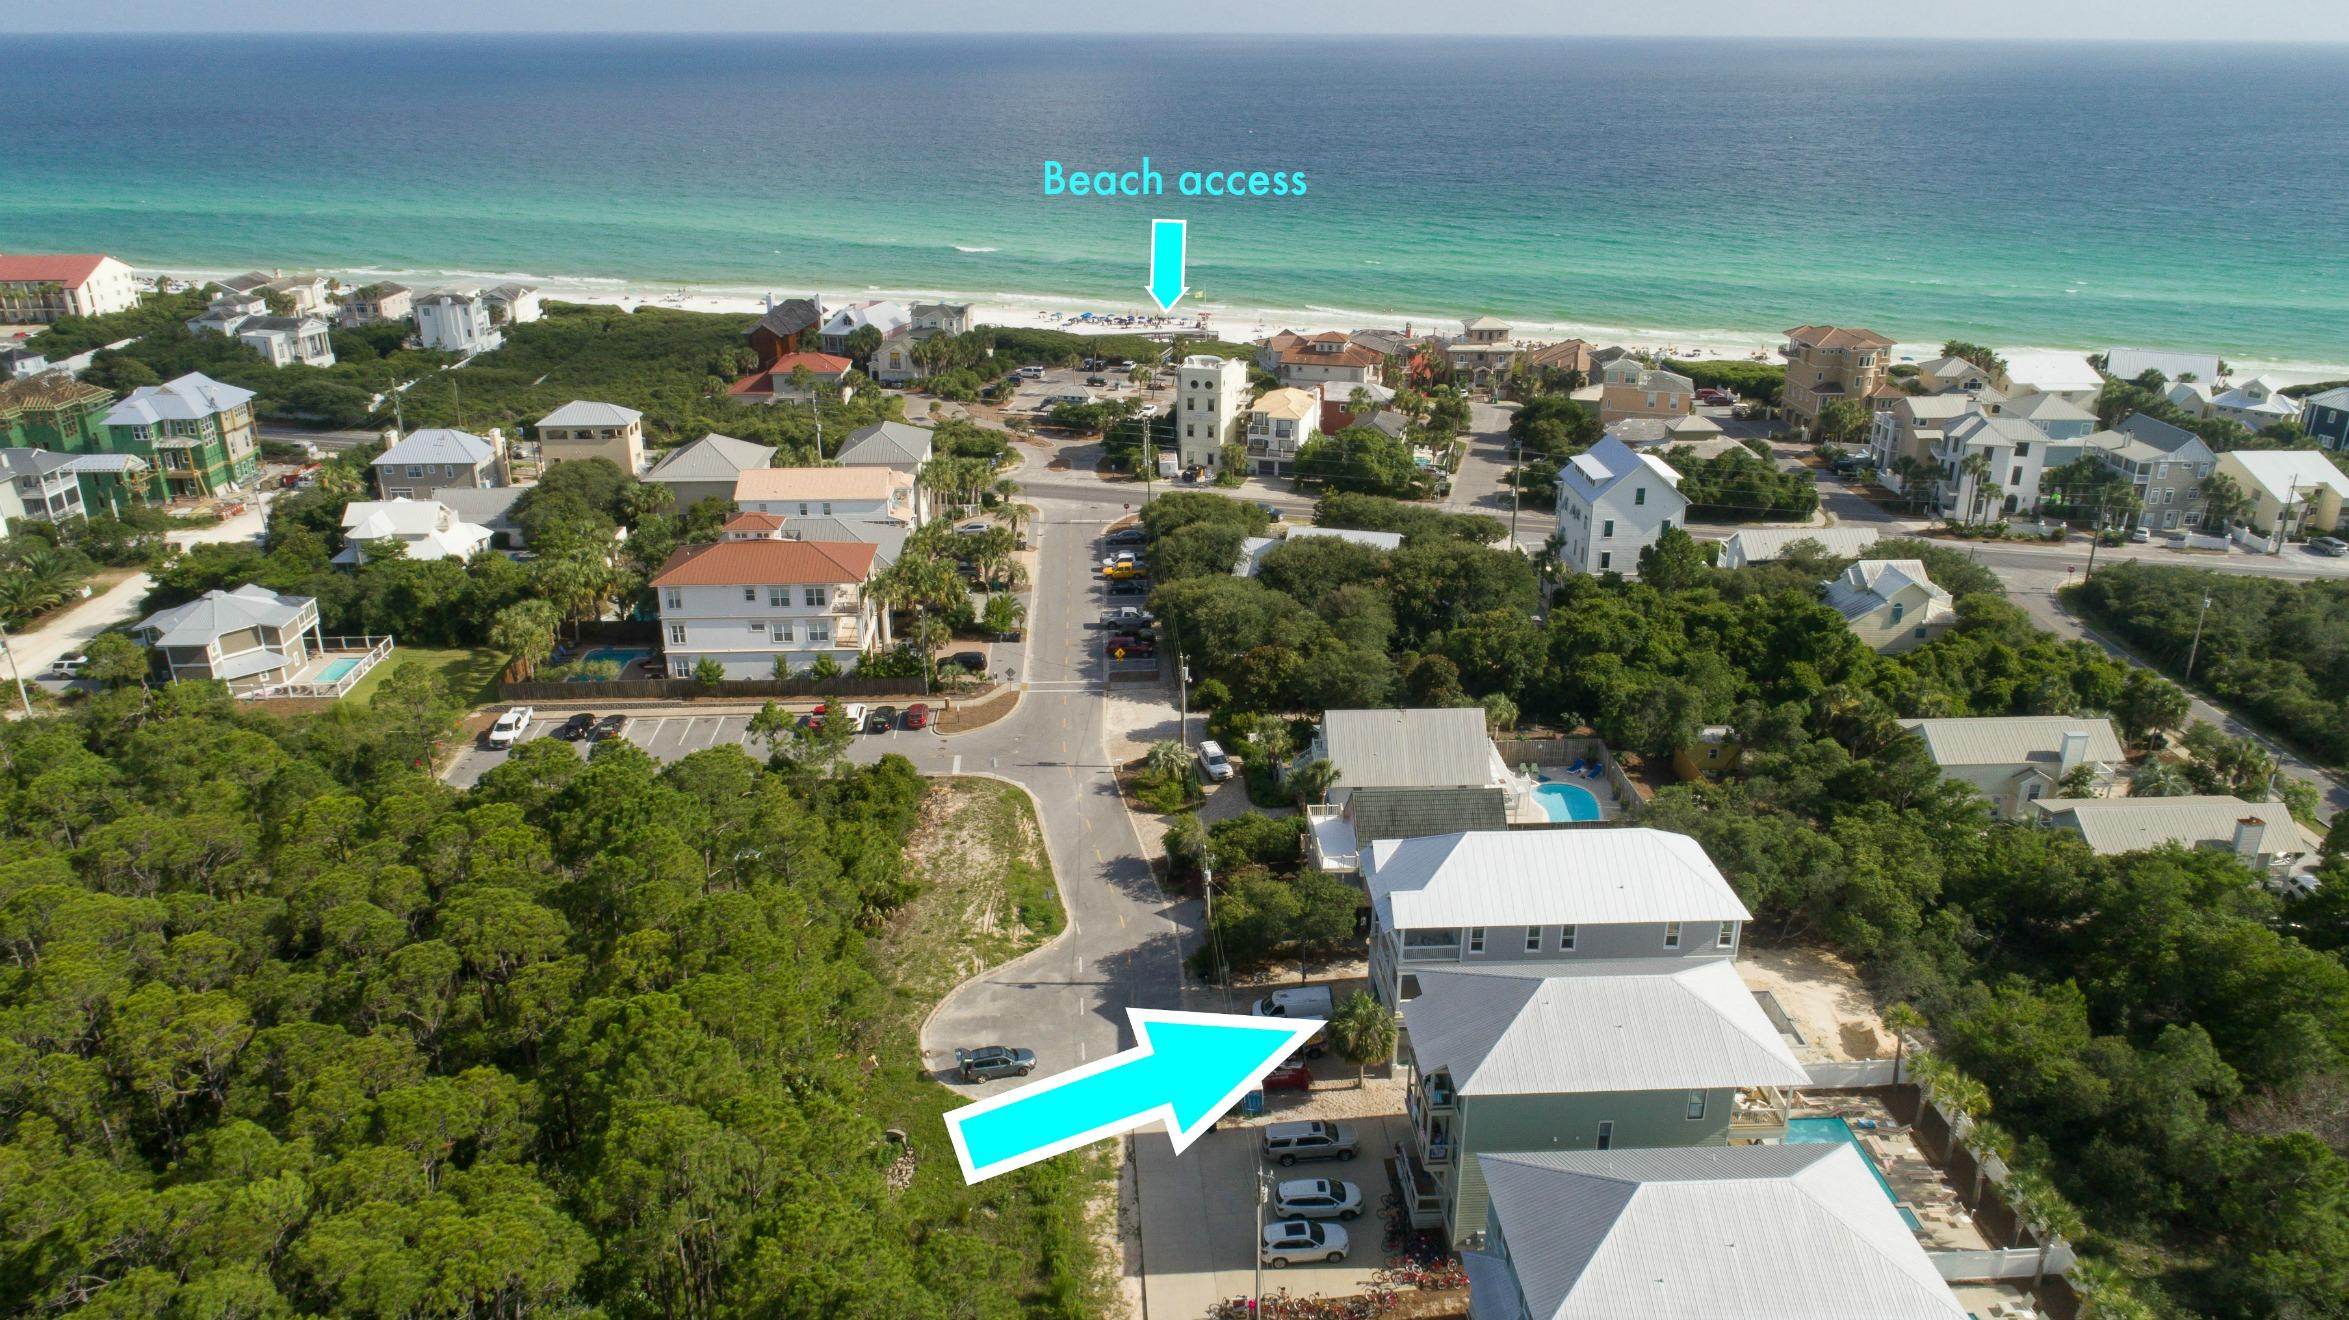 81 Santa Clara,Santa Rosa Beach,Florida 32459,5 Bedrooms Bedrooms,5 BathroomsBathrooms,Detached single family,Santa Clara,20131126143817002353000000